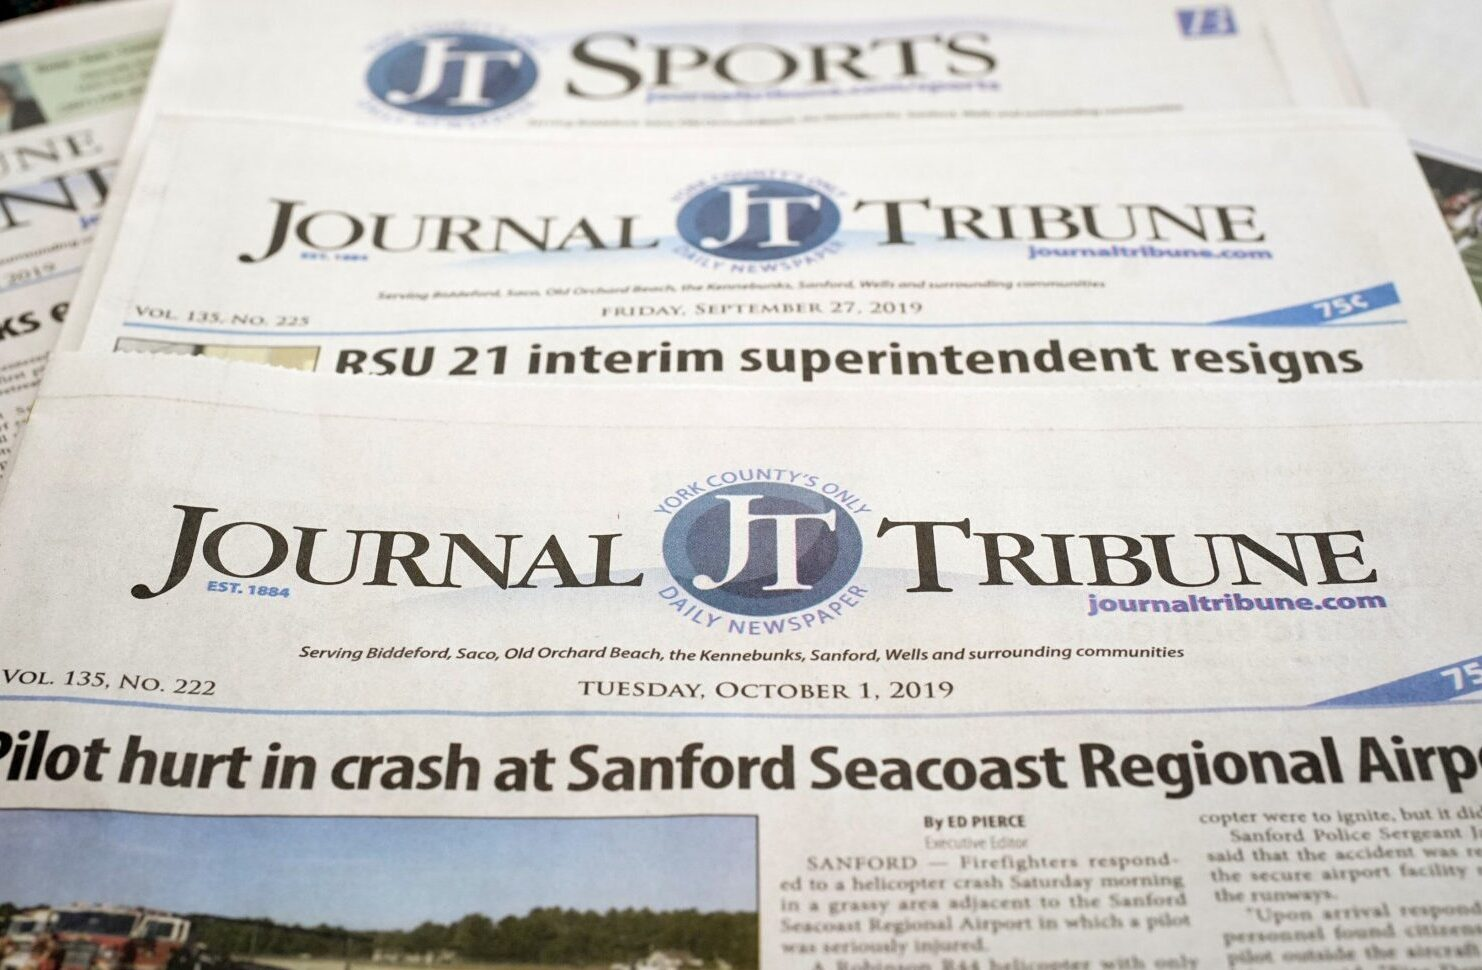 Biddeford S Daily Journal Tribune Will Soon End Its Run After 135 Years Portland Press Herald